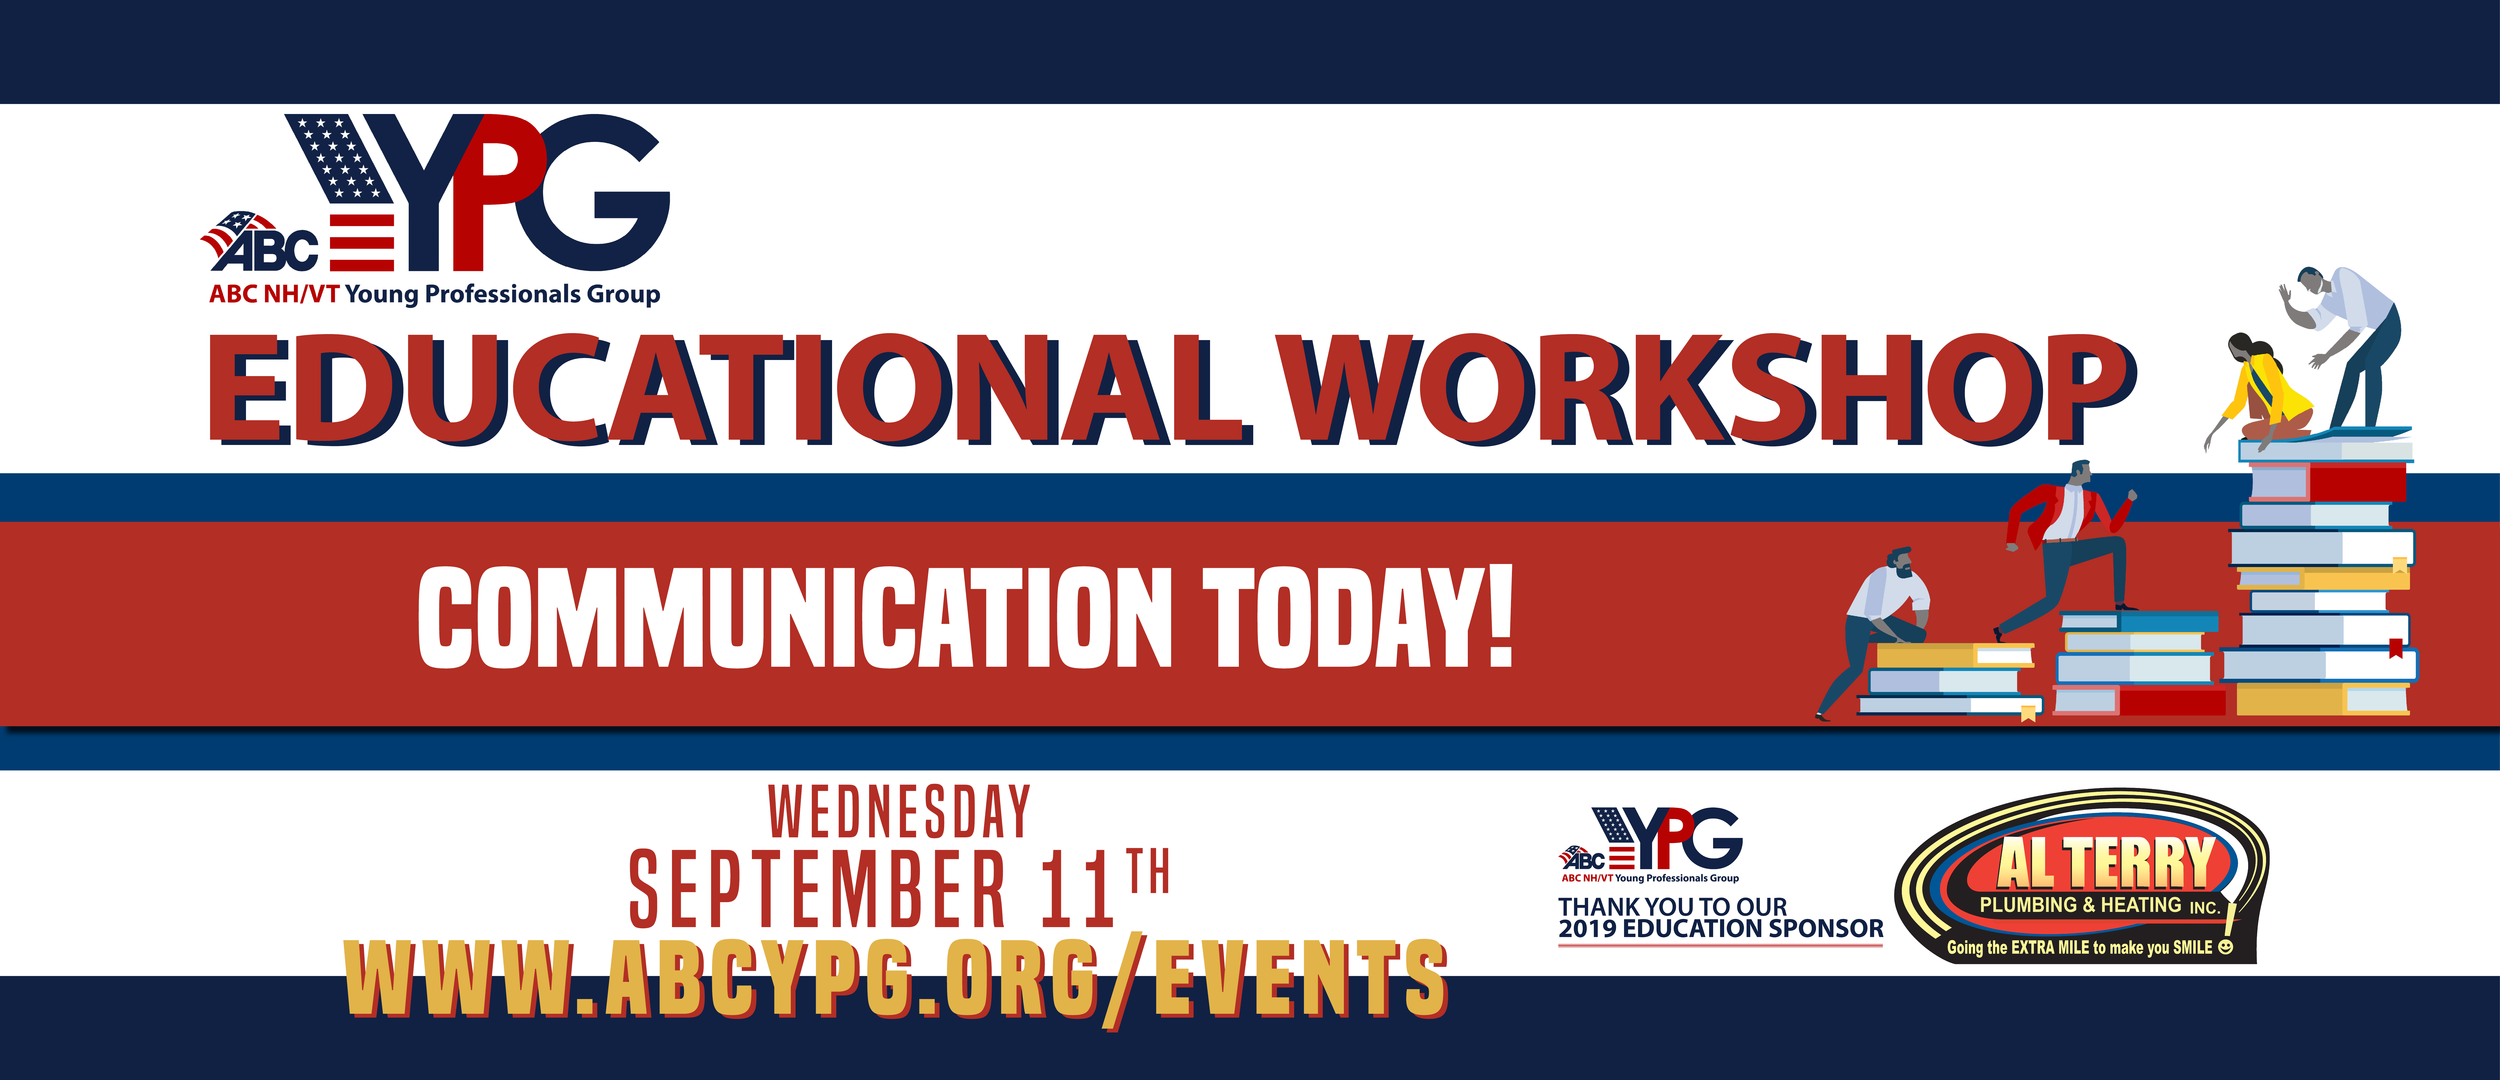 2019-09 Educational Workshop - Communication Today! - WEB MEDIA.png